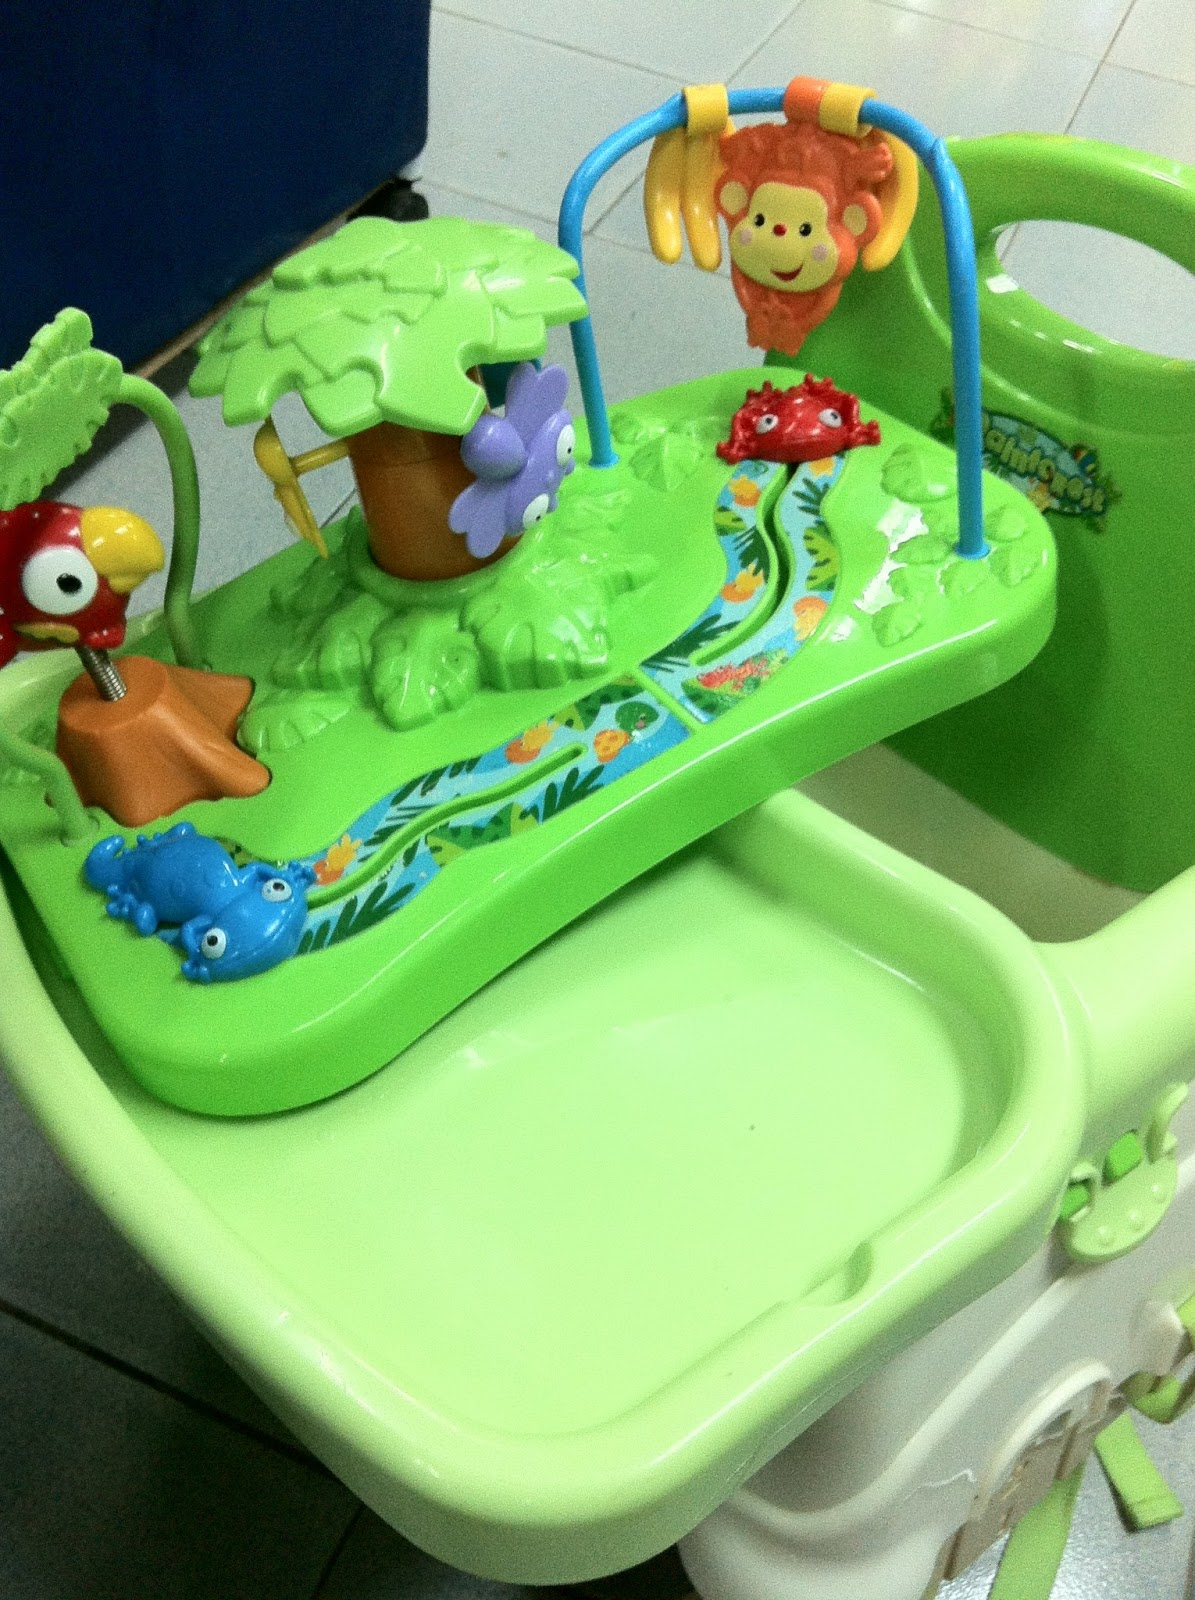 Fisher Price Rainforest Healthy Care High Chair 2 Lawn Chairs Lowes Preloved Toysworld Thetottoys